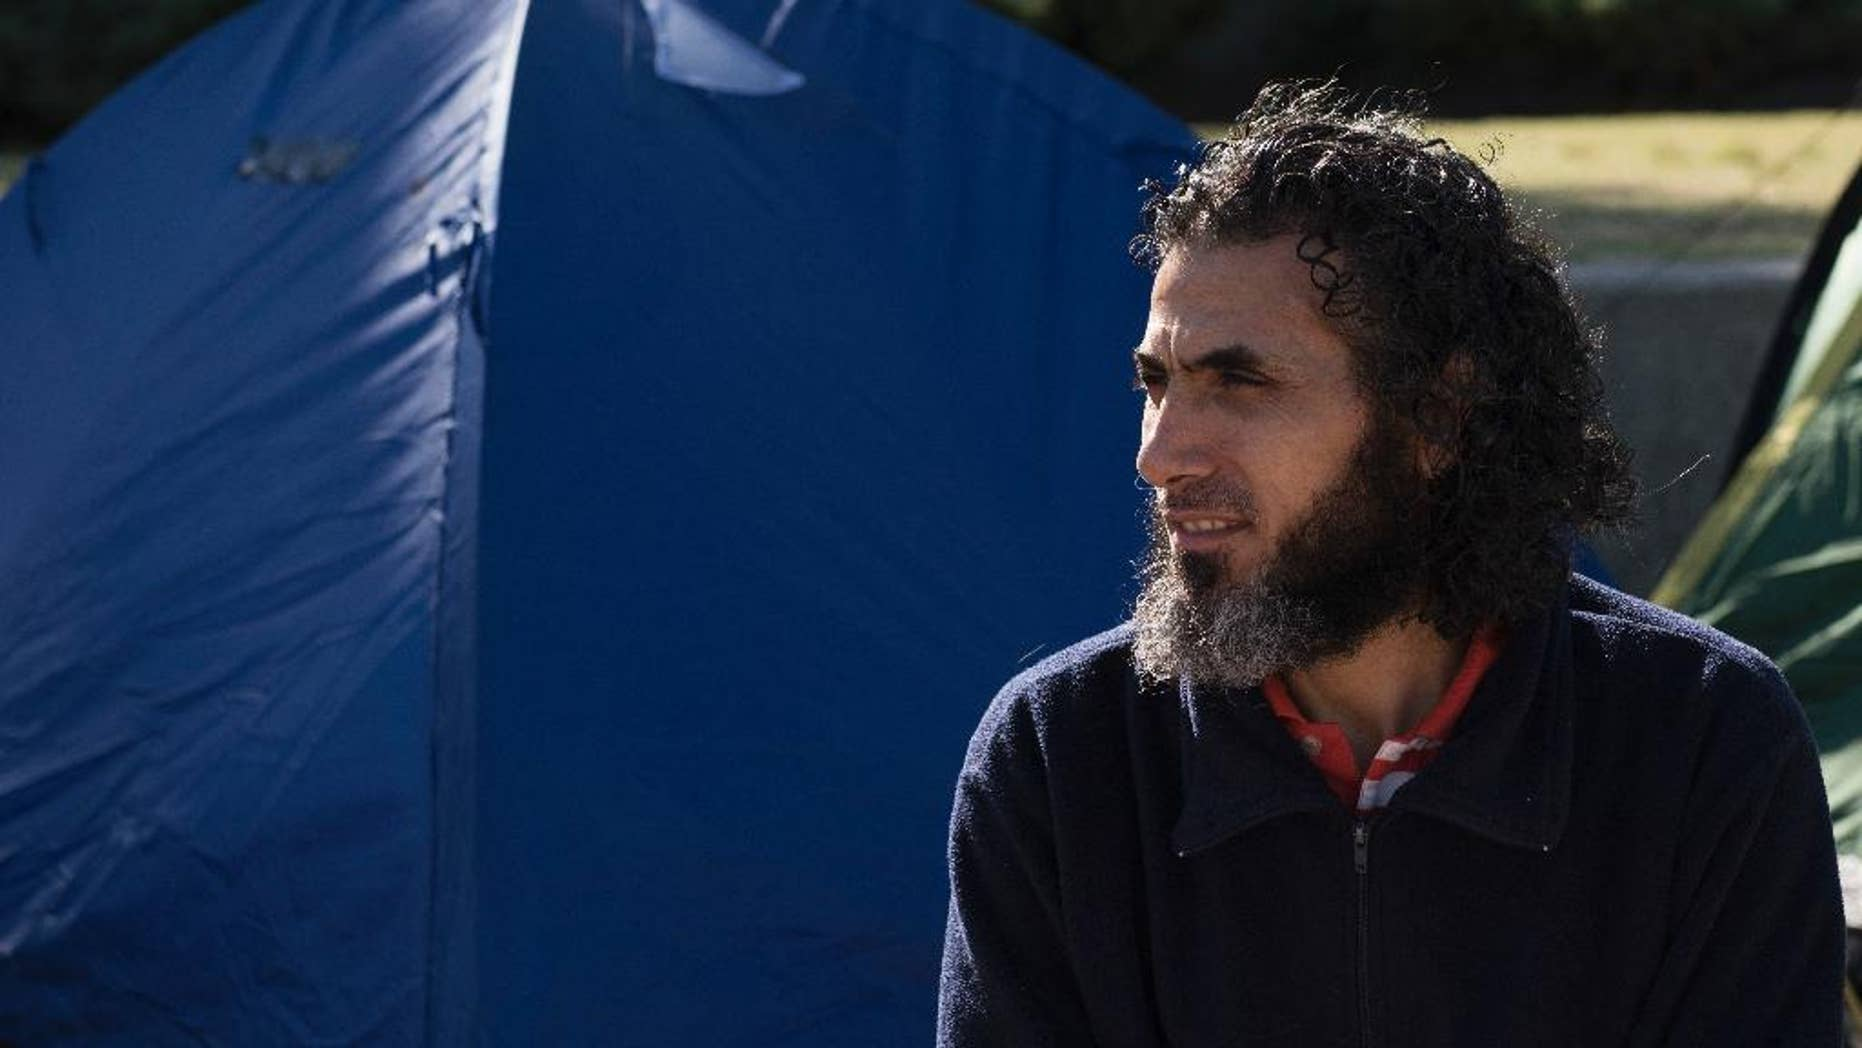 FILE - In this May 5, 2015 file photo, Abu Wa'el Dhiab, from Syria, sits in front of the U.S. embassy while visiting former fellow detainees demanding financial assistance from the U.S., in Montevideo, Uruguay. Ending a two-year struggle to leave Uruguay, former Guantanamo detainee Abu Wa'el Dhiab left the South American country on Thursday, Dec. 15, for Johannesburg, South Africa, said Christian Mirza, Dhiab's former government liaison. (AP Photo/Matilde Campodonico, File)